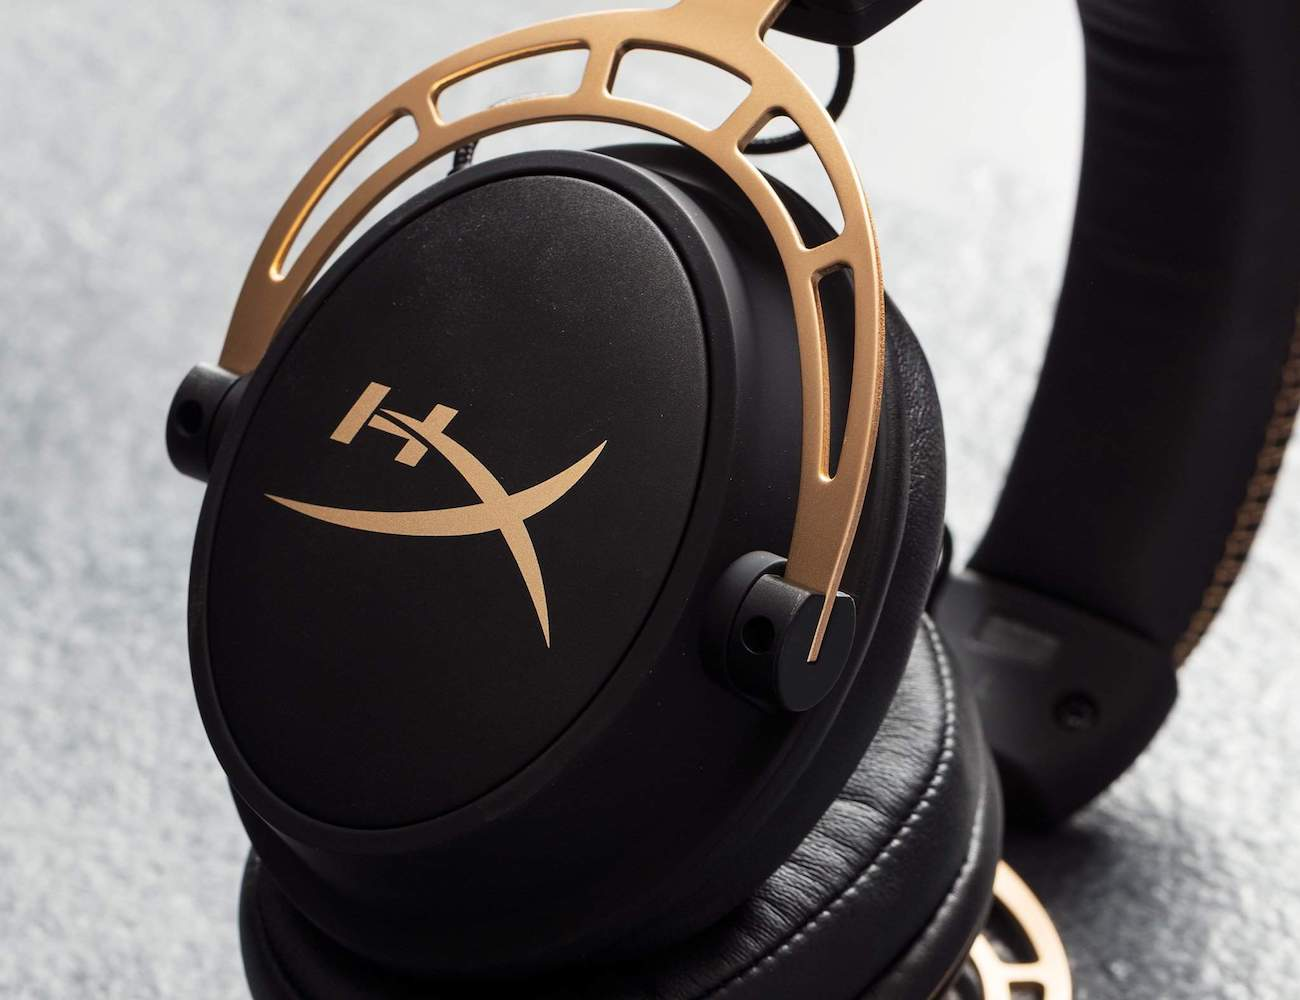 The best new tech revealed at Computex 2019 - HyperX headset